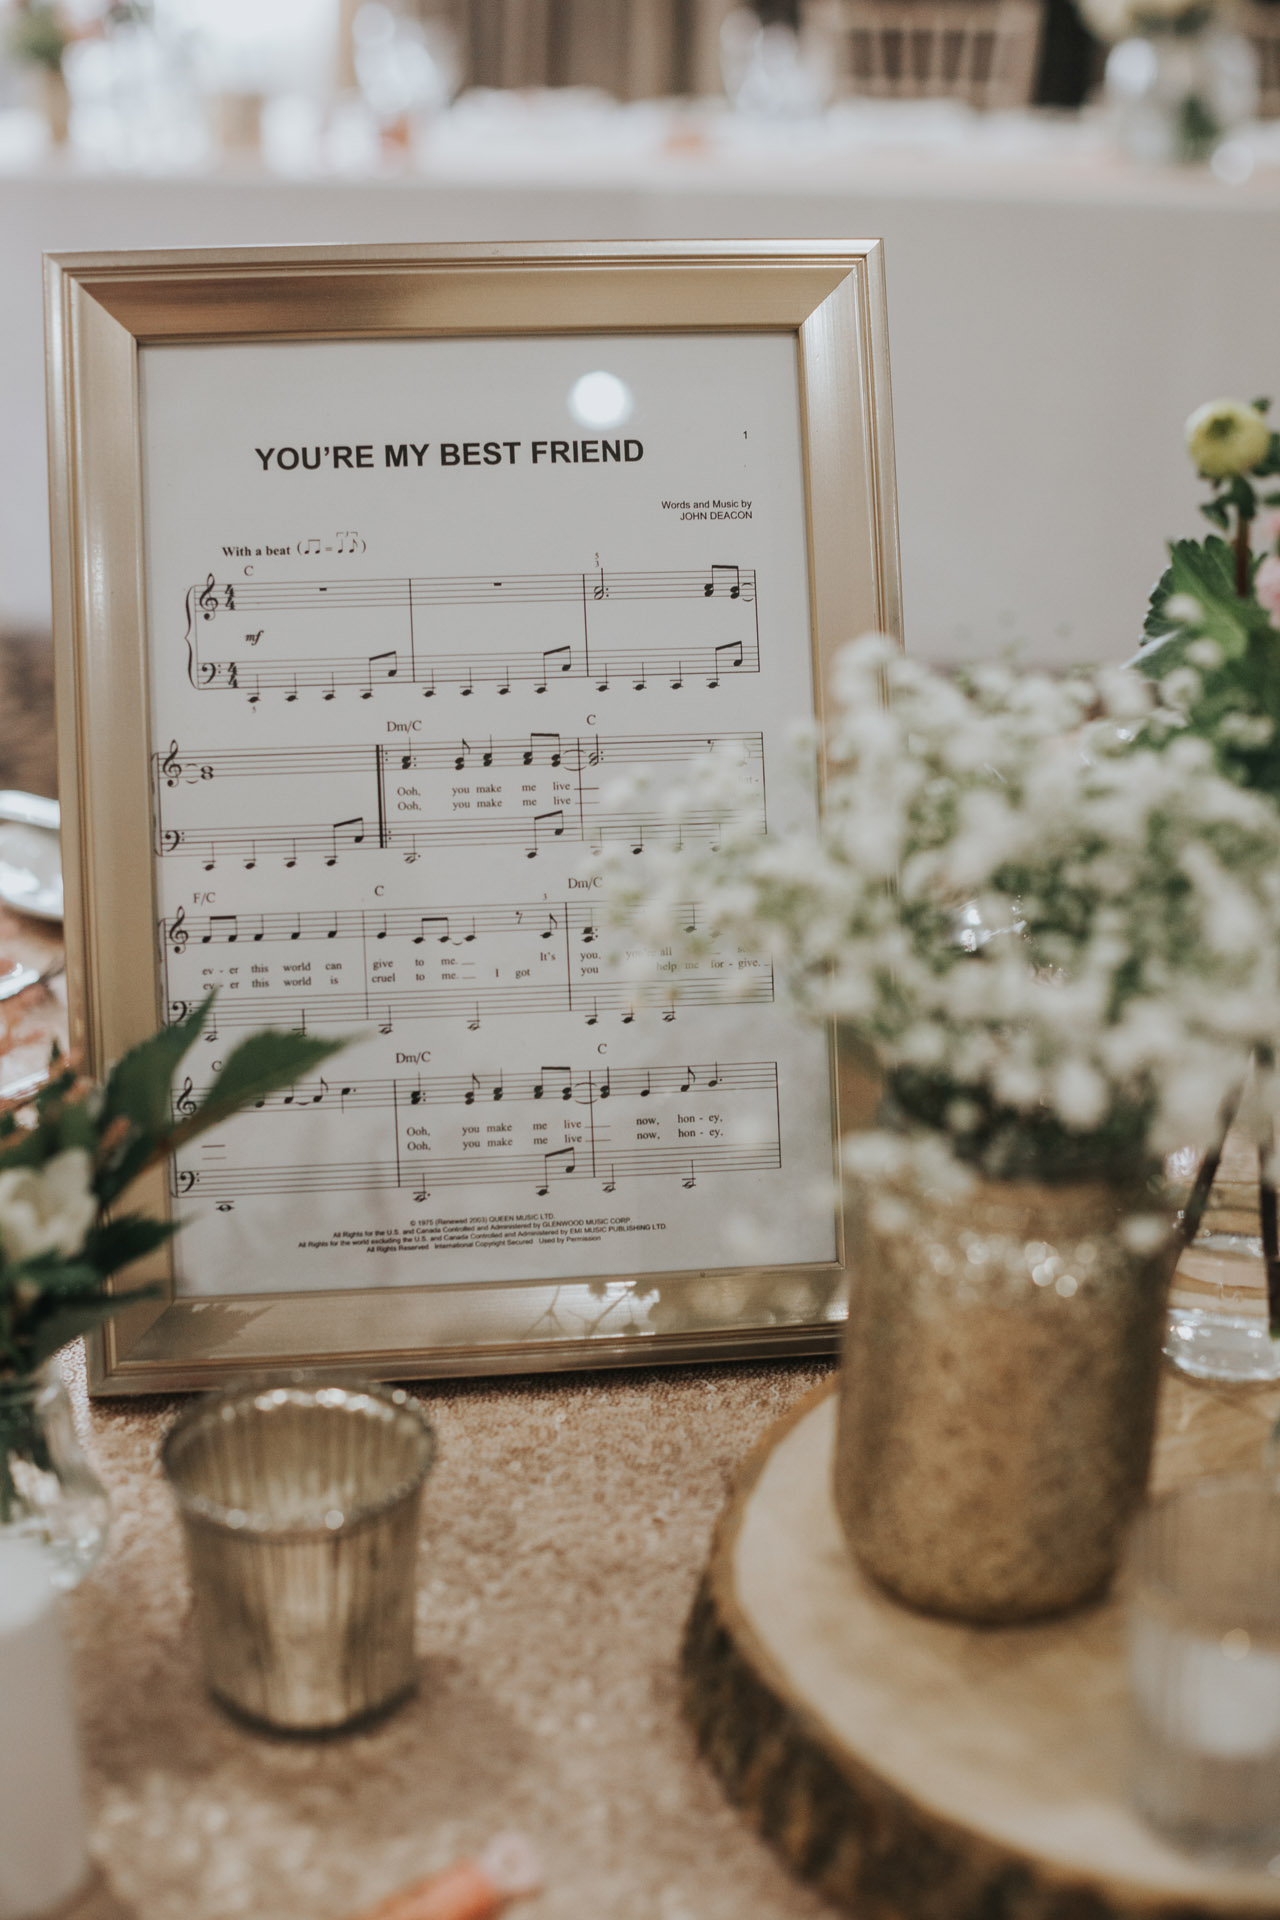 You are my best friend, sheet music, table decor.